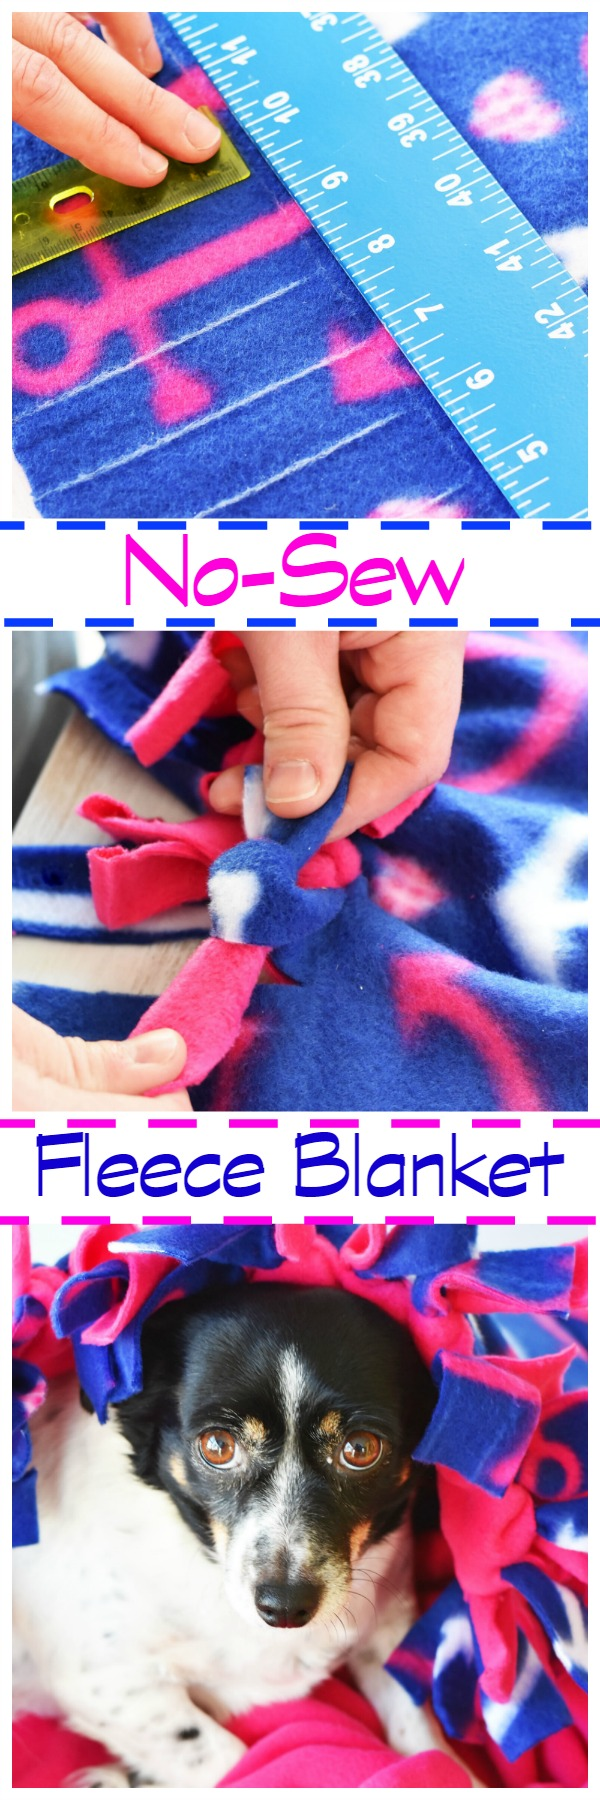 no-sew-fleece-blanket